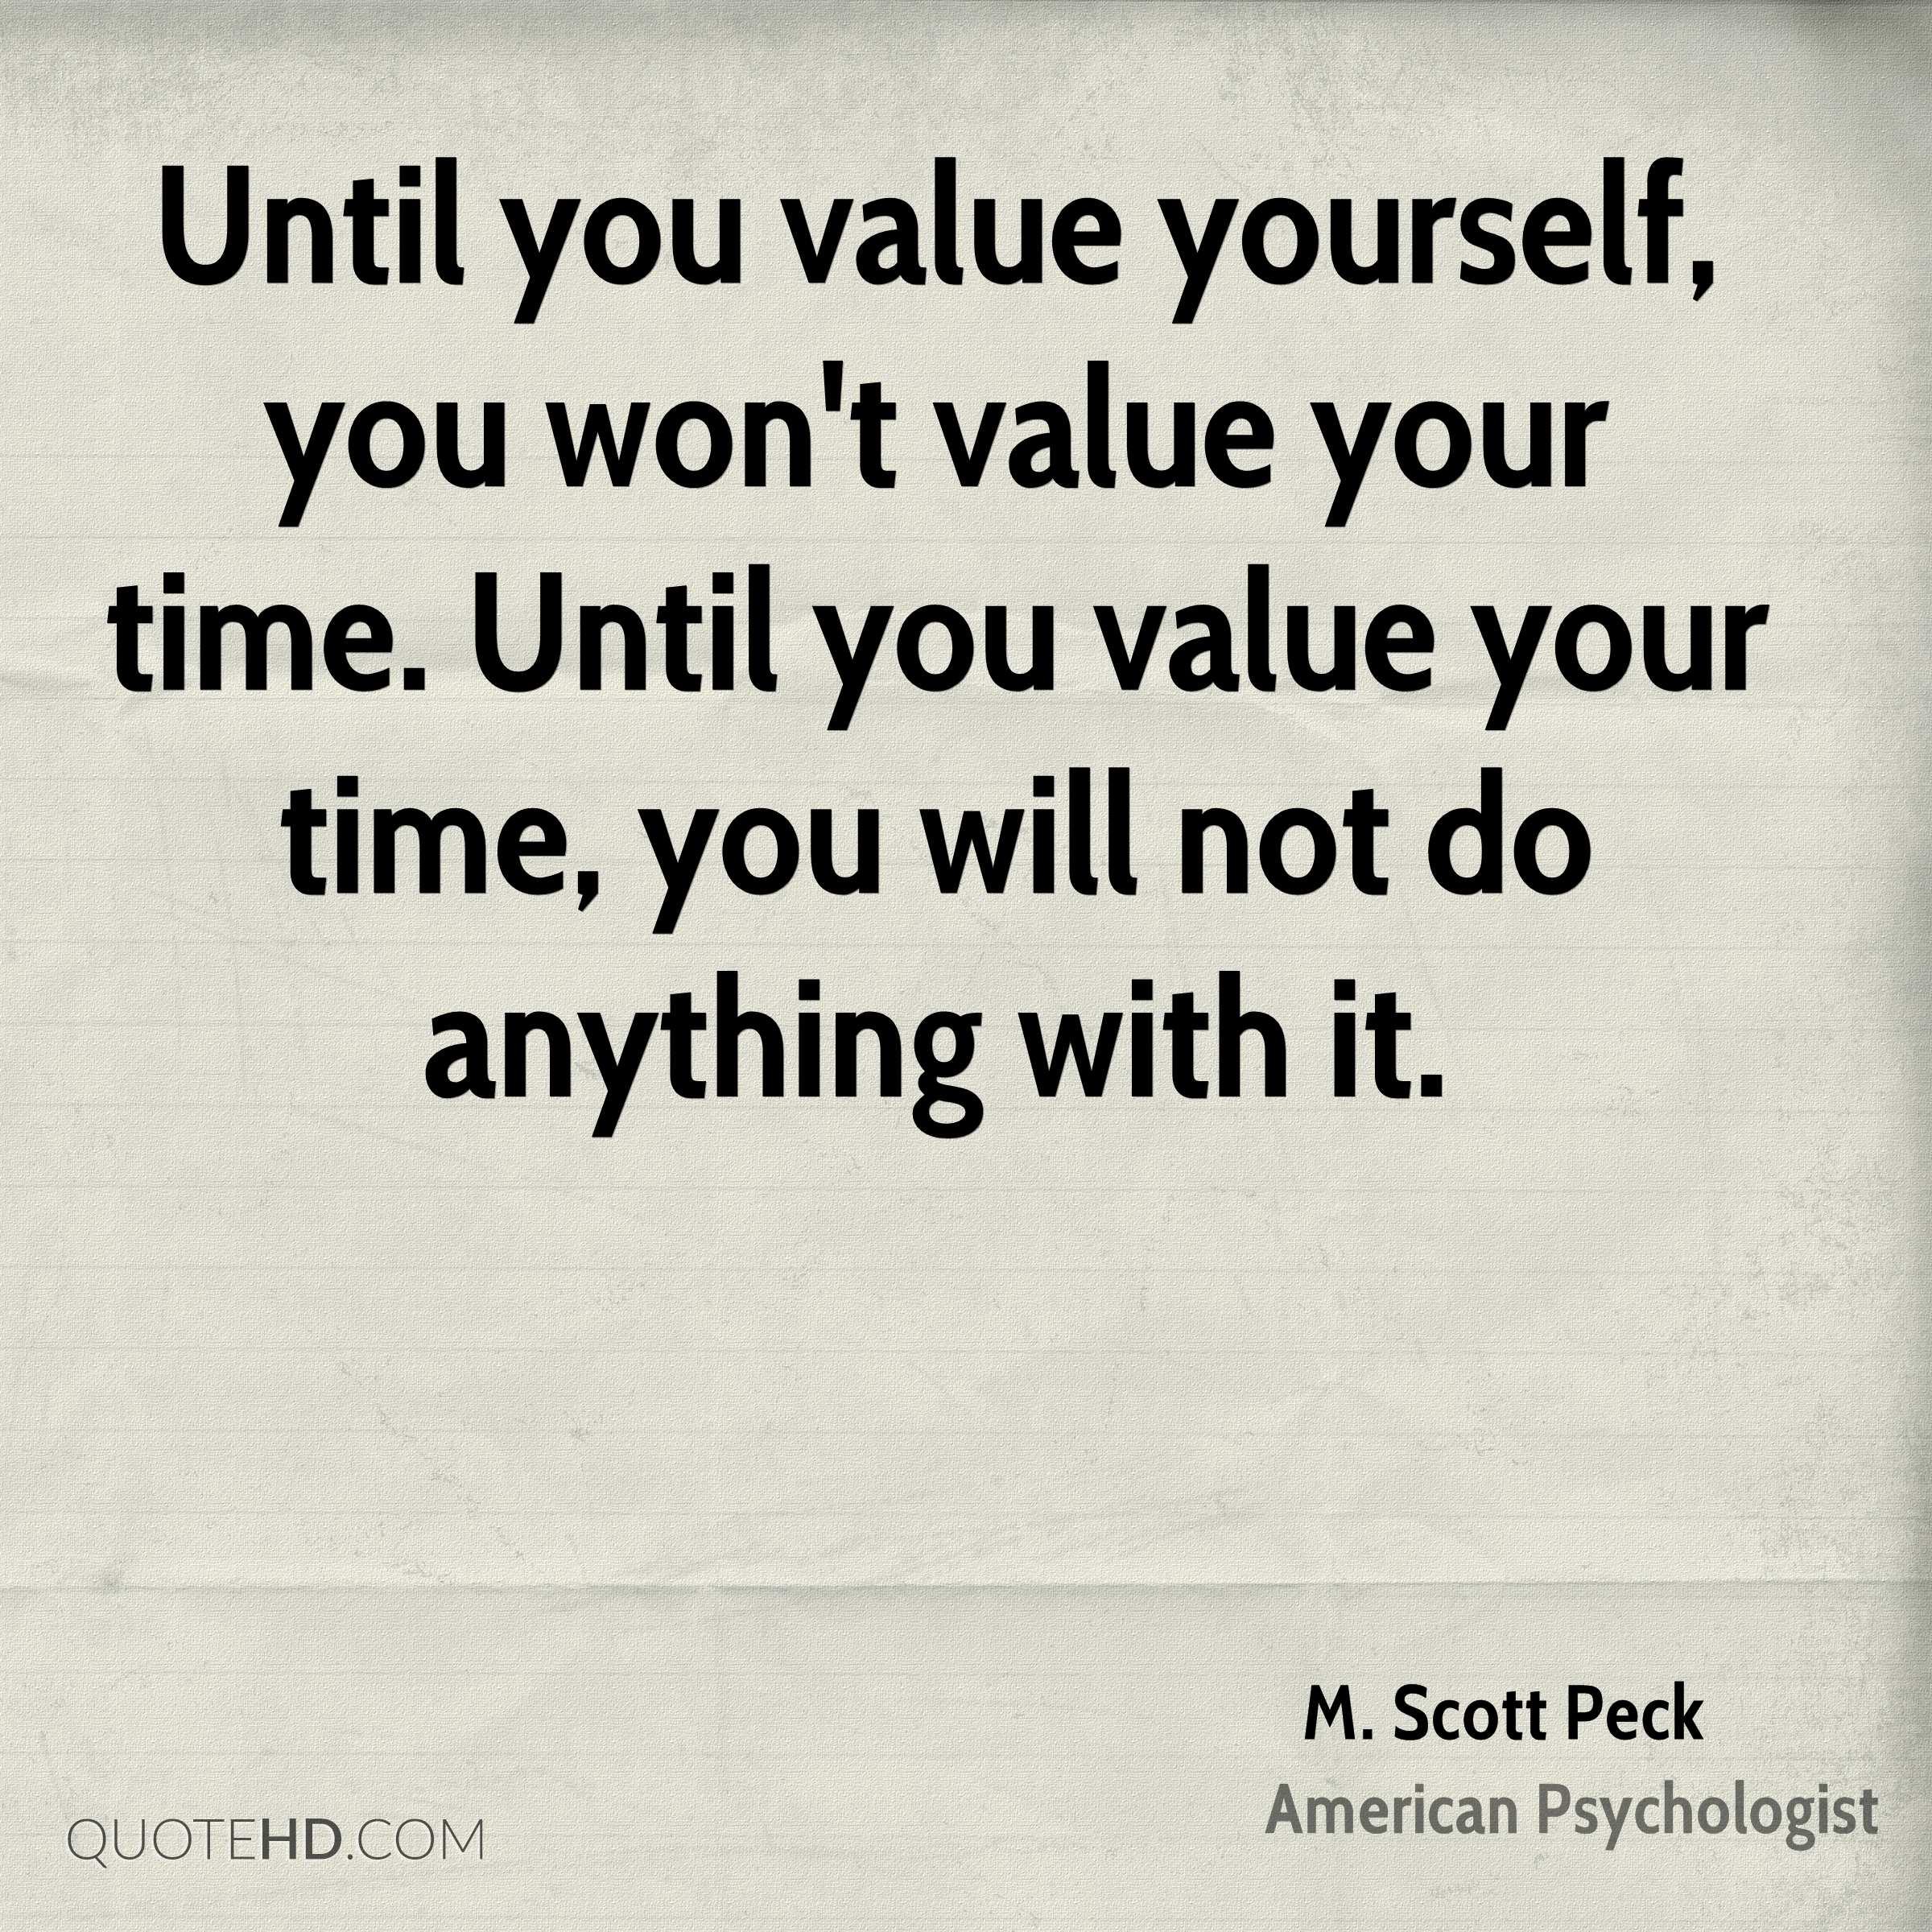 Quotes On Time Value: M. Scott Peck Time Quotes